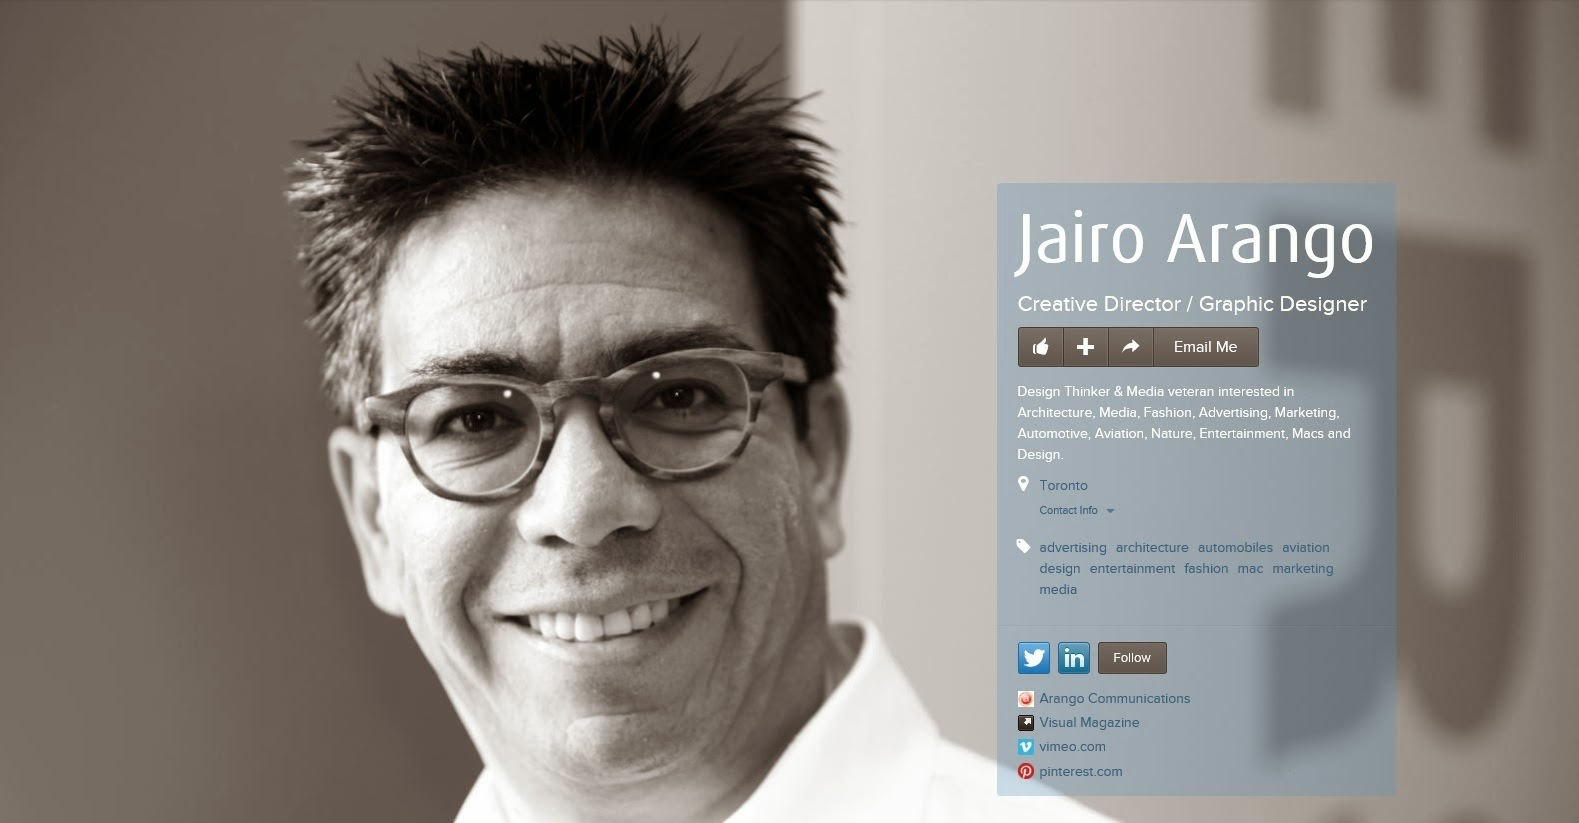 An image of Jairo Arango, Creative Director & Graphic Designer